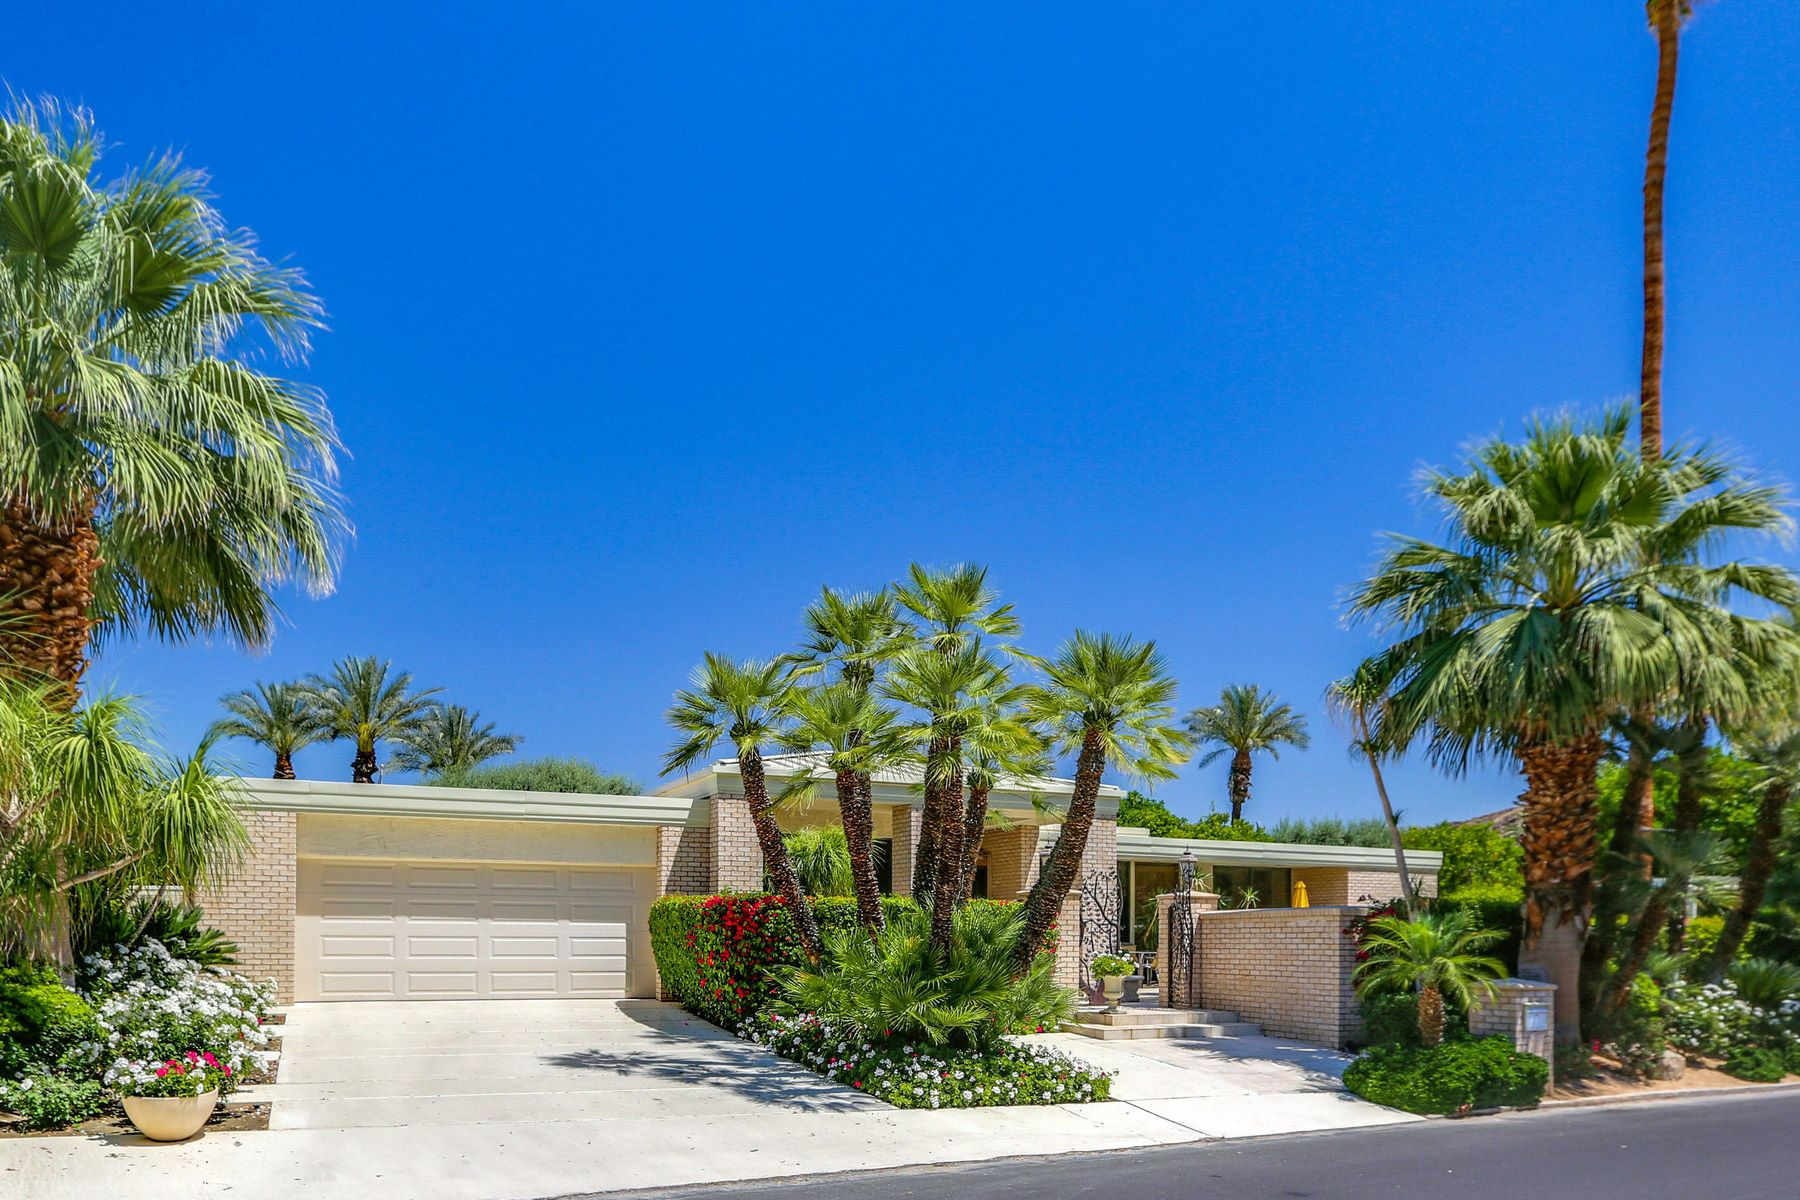 Single Family Homes for Sale at 46665 East Eldorado Drive Indian Wells, California 92210 United States